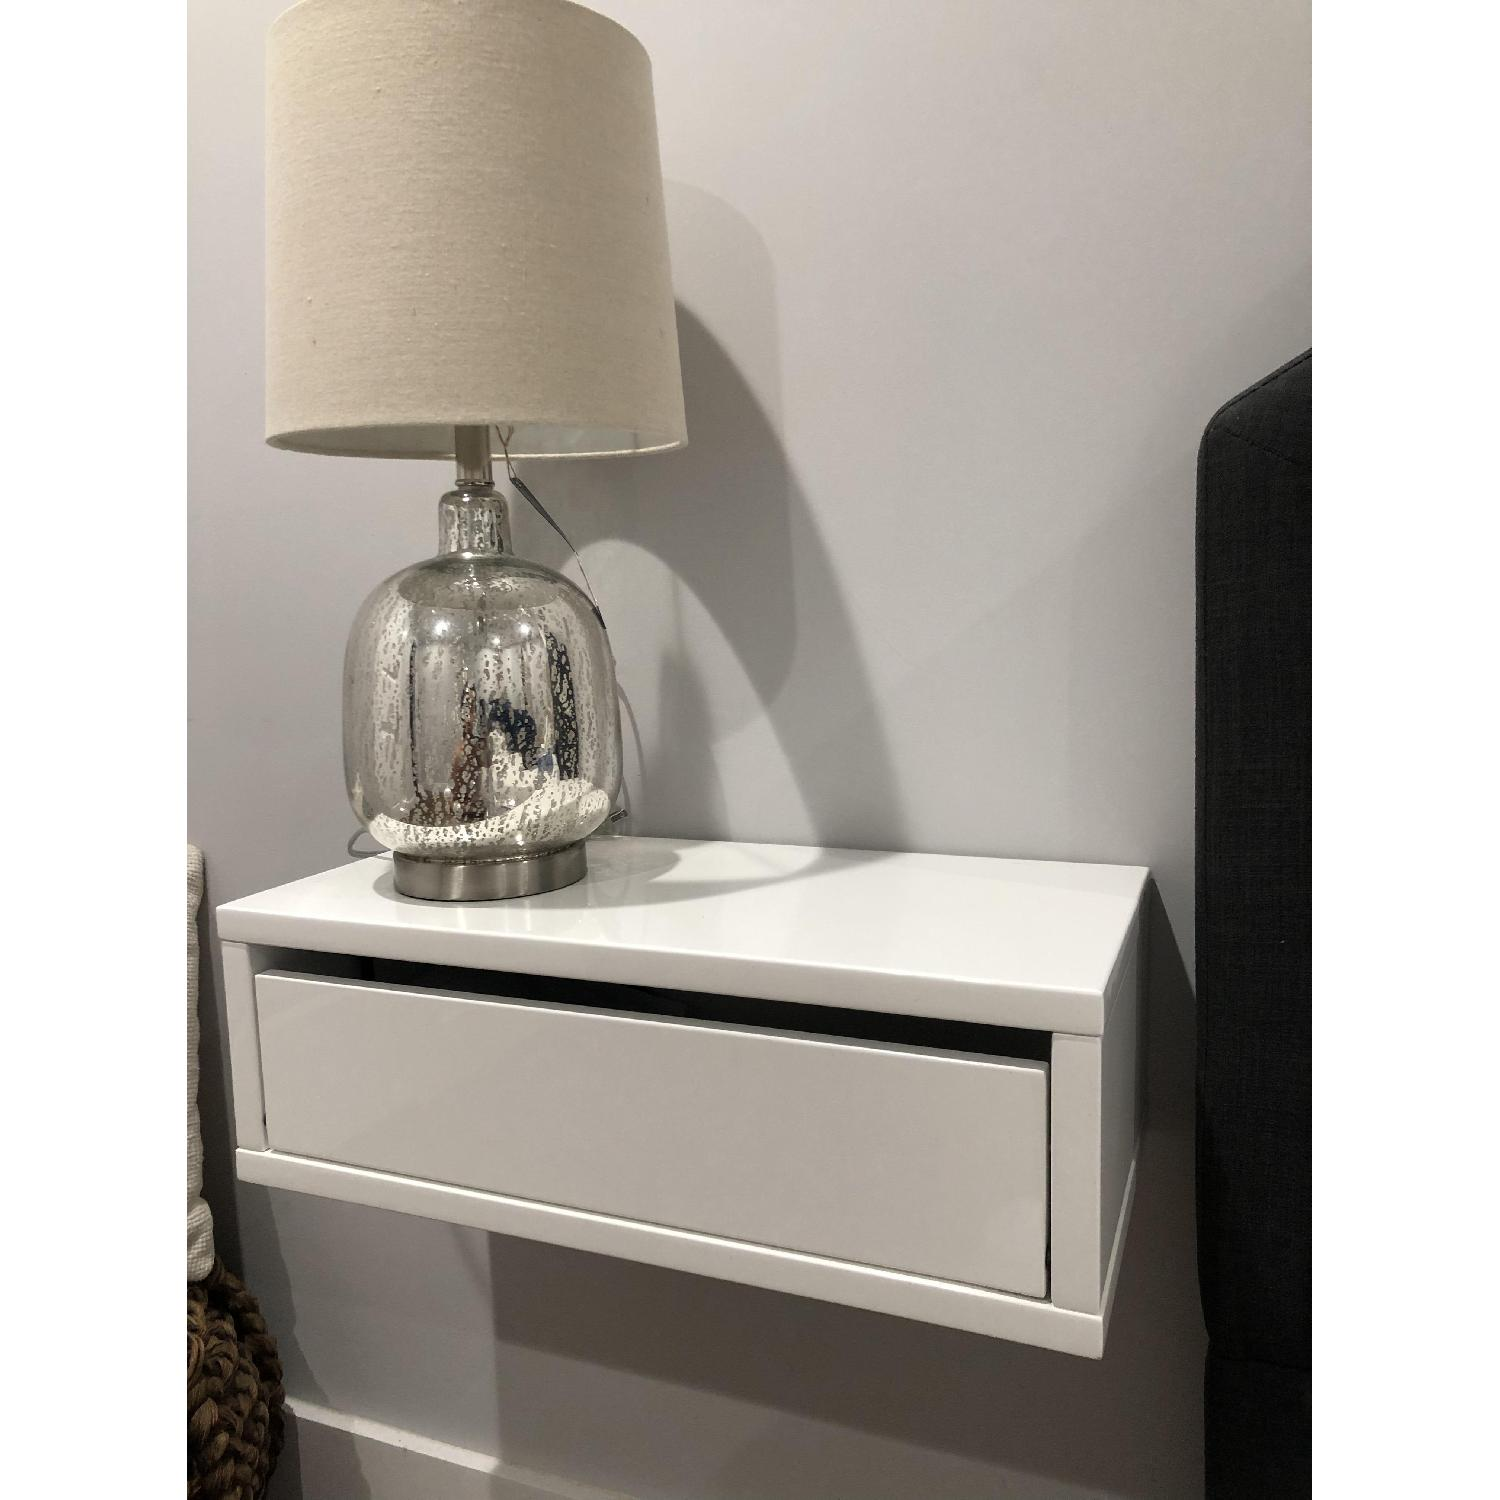 Cb2 Floating Storage Shelf Nightstand